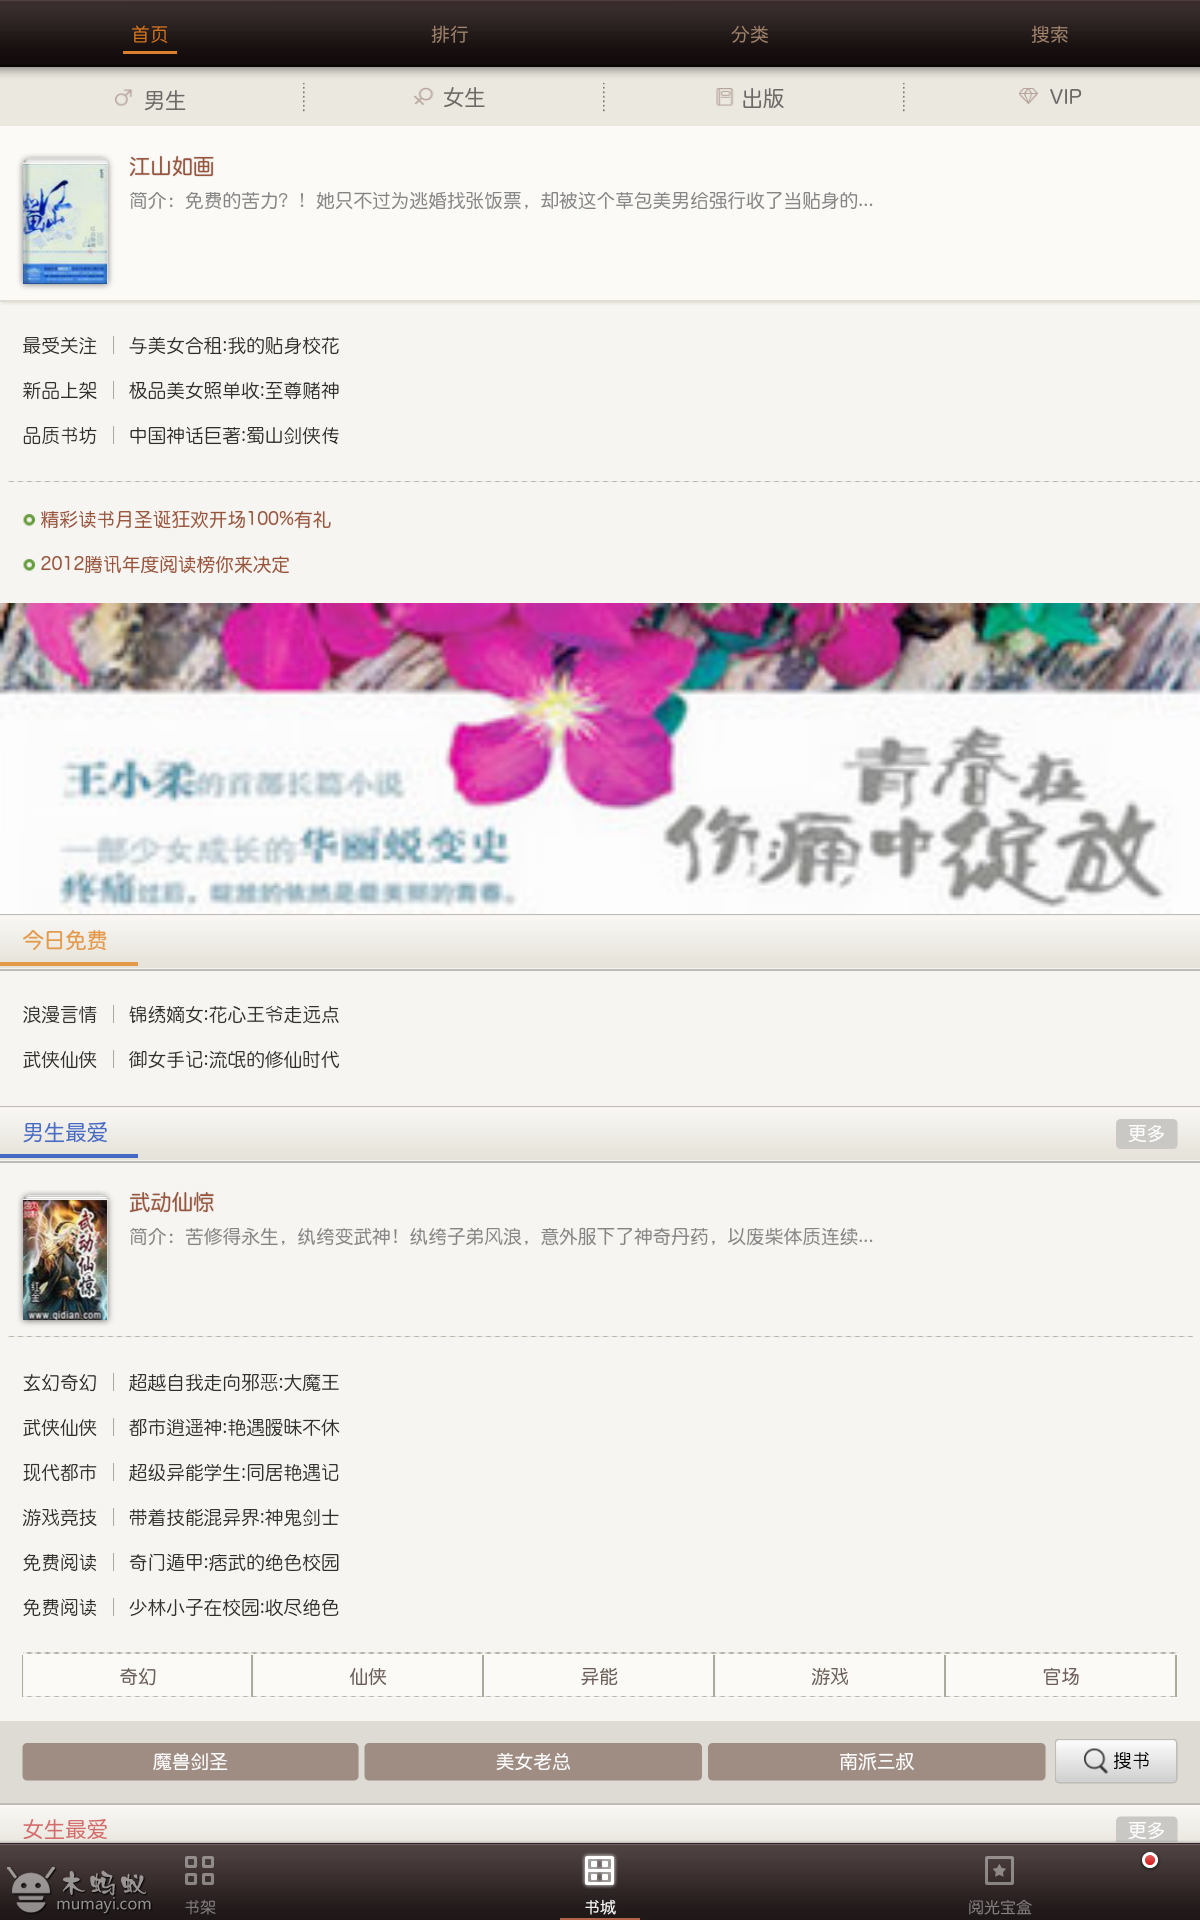 Screenshot_2012-12-27-11-30-10.png